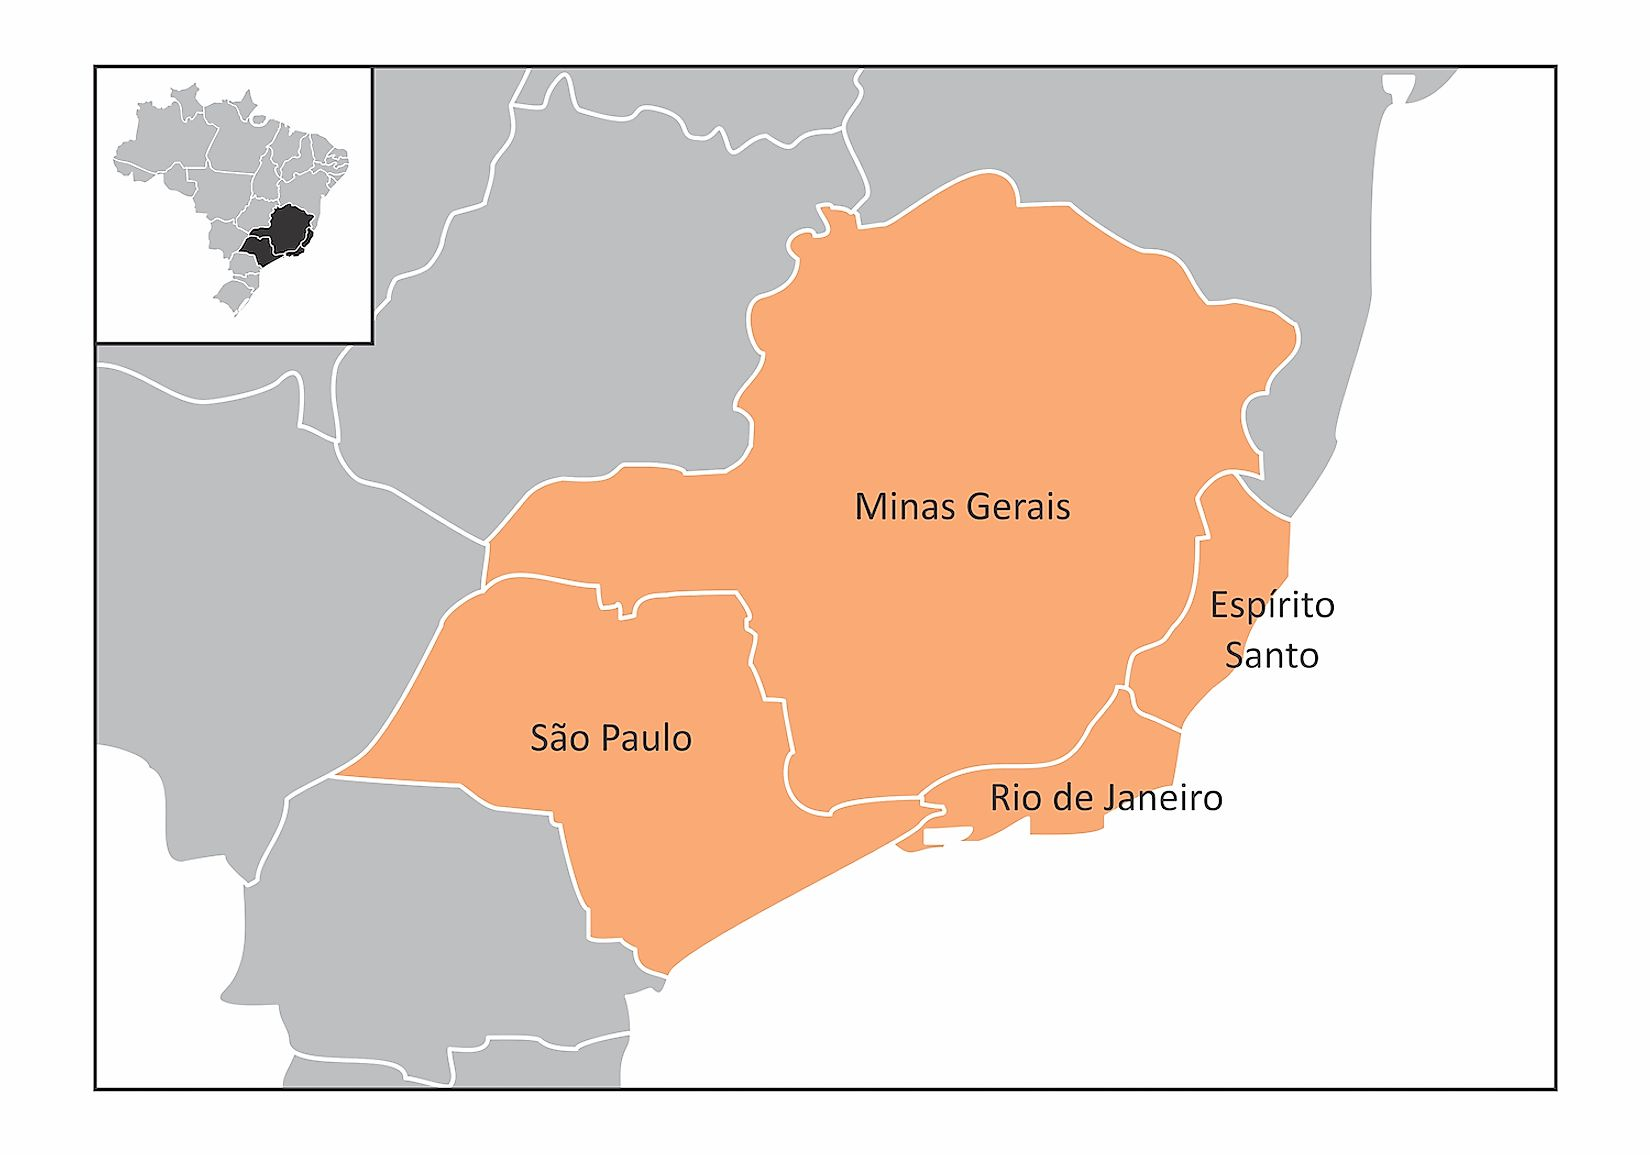 Map of the southeast region of Brazil with the identified states. Image credit: Luisrftc/Shutterstock.com